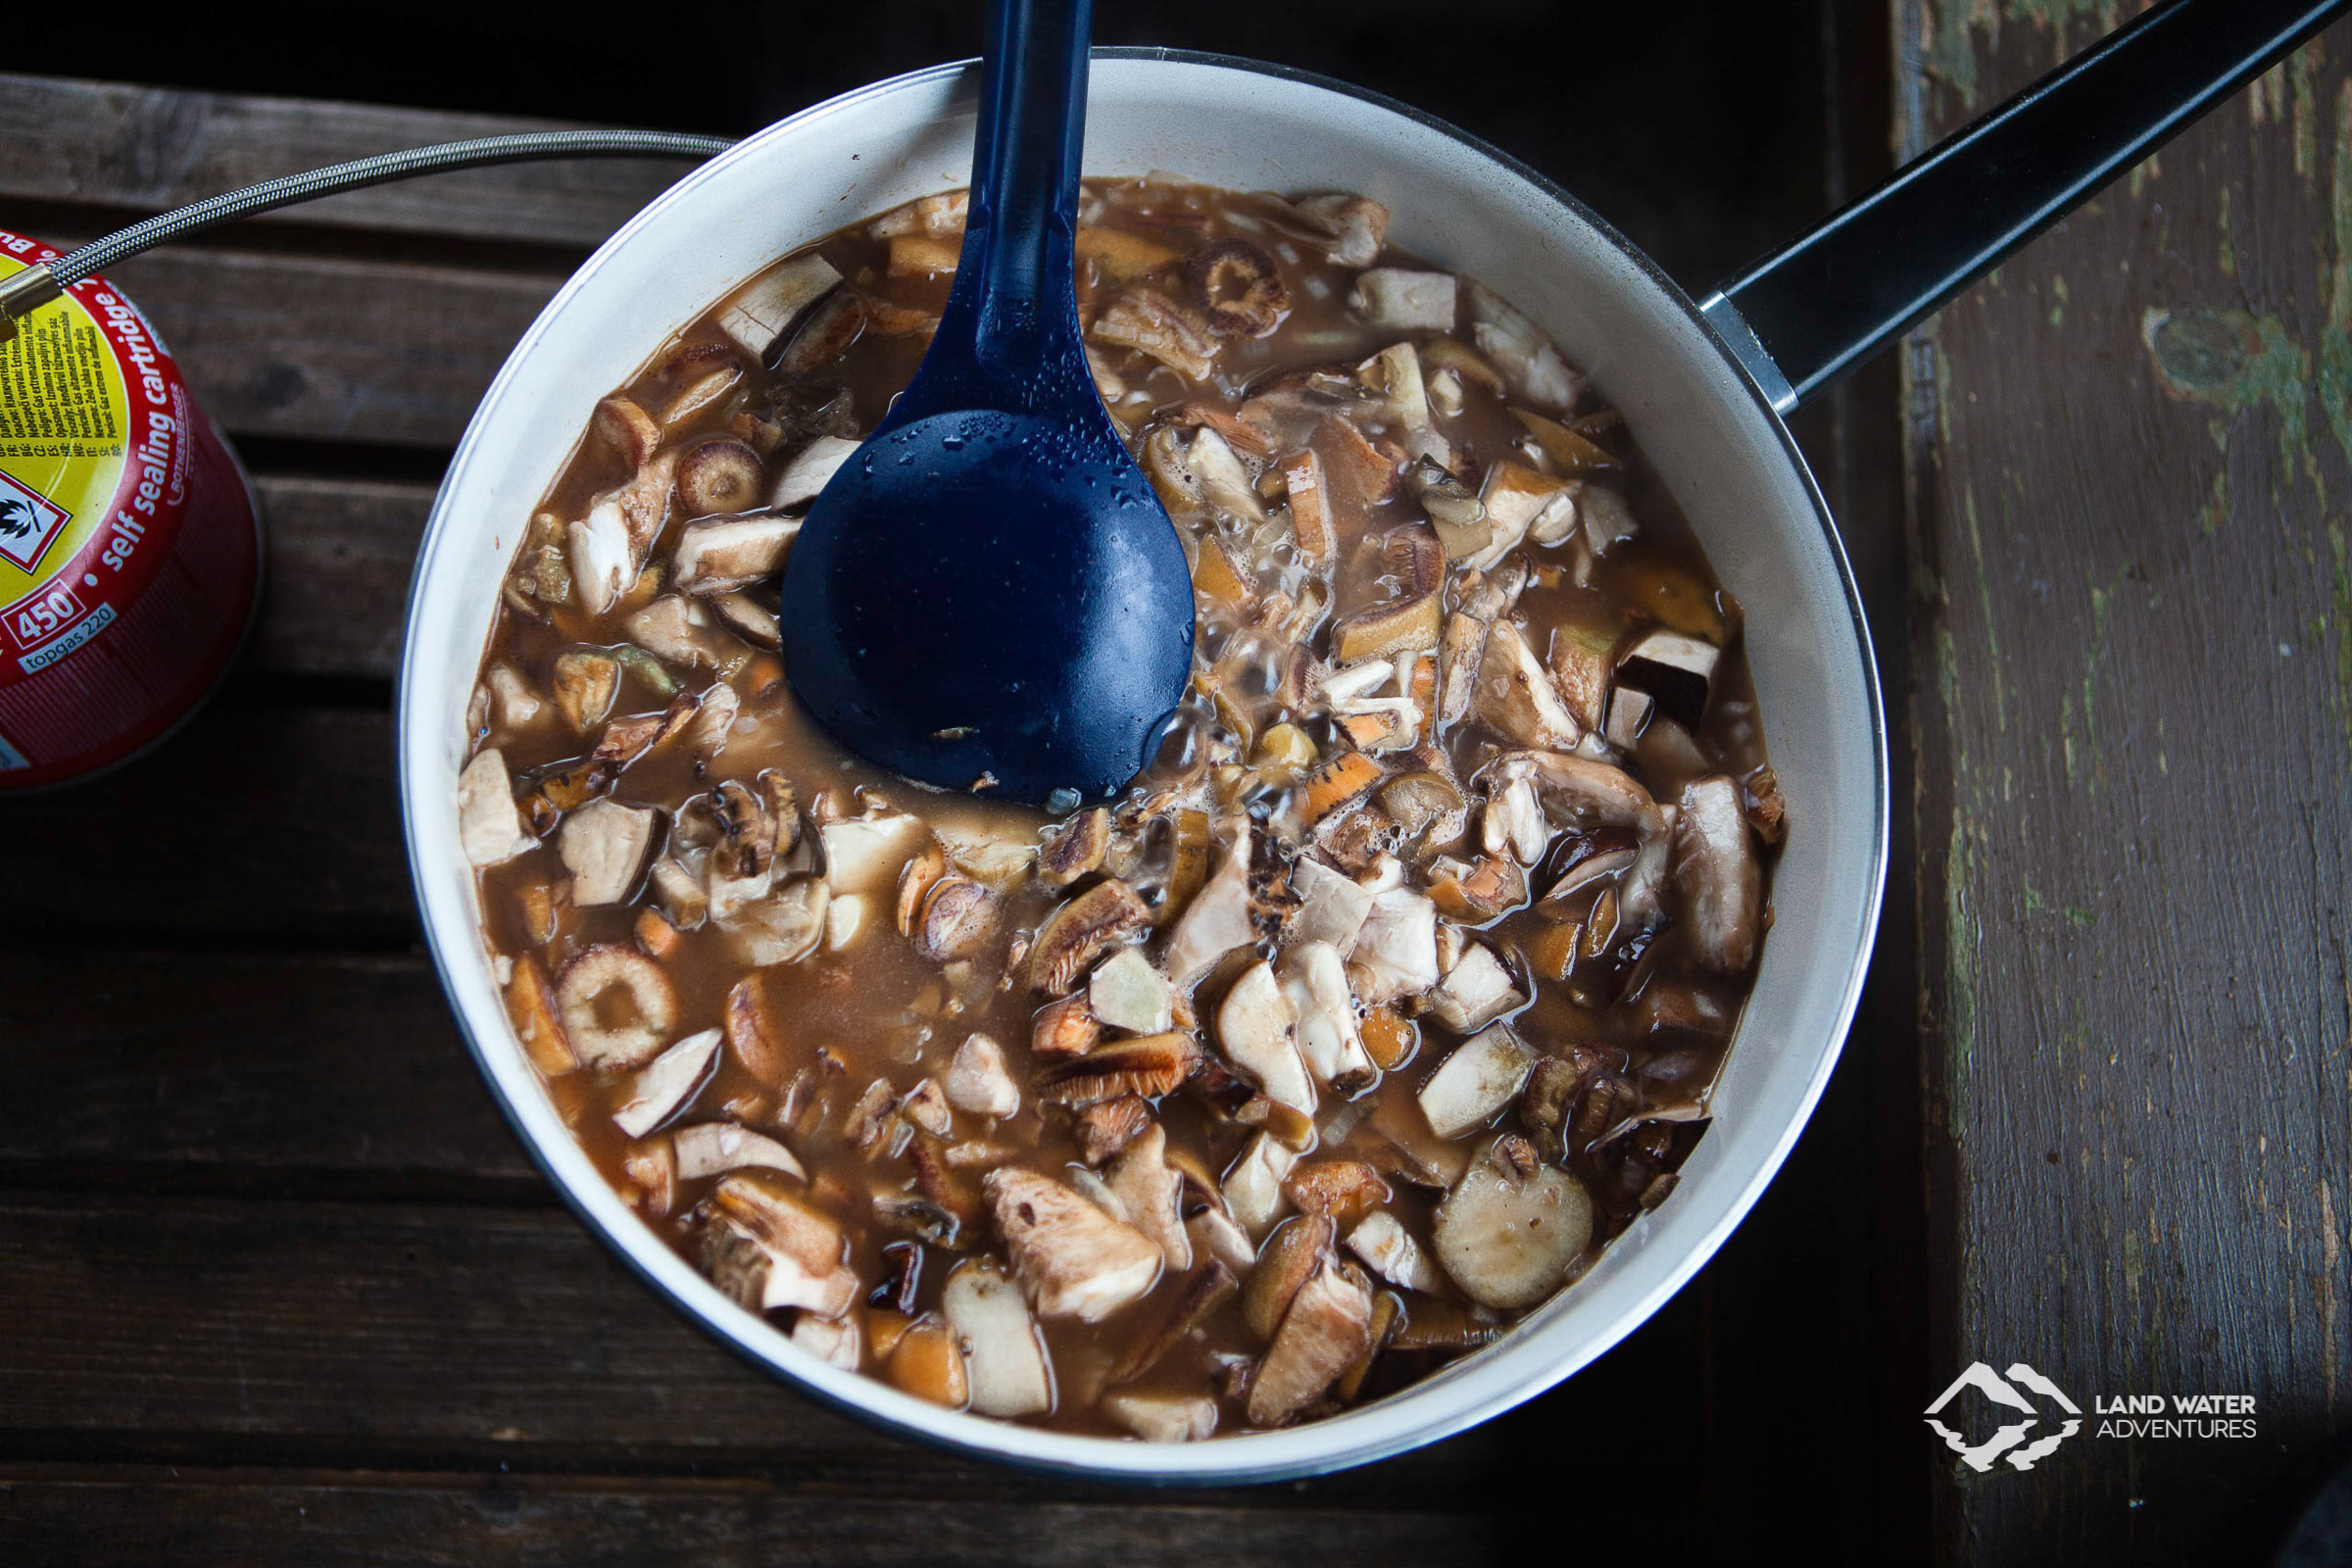 There's no fresher mushroom pan © Land Water Adventures